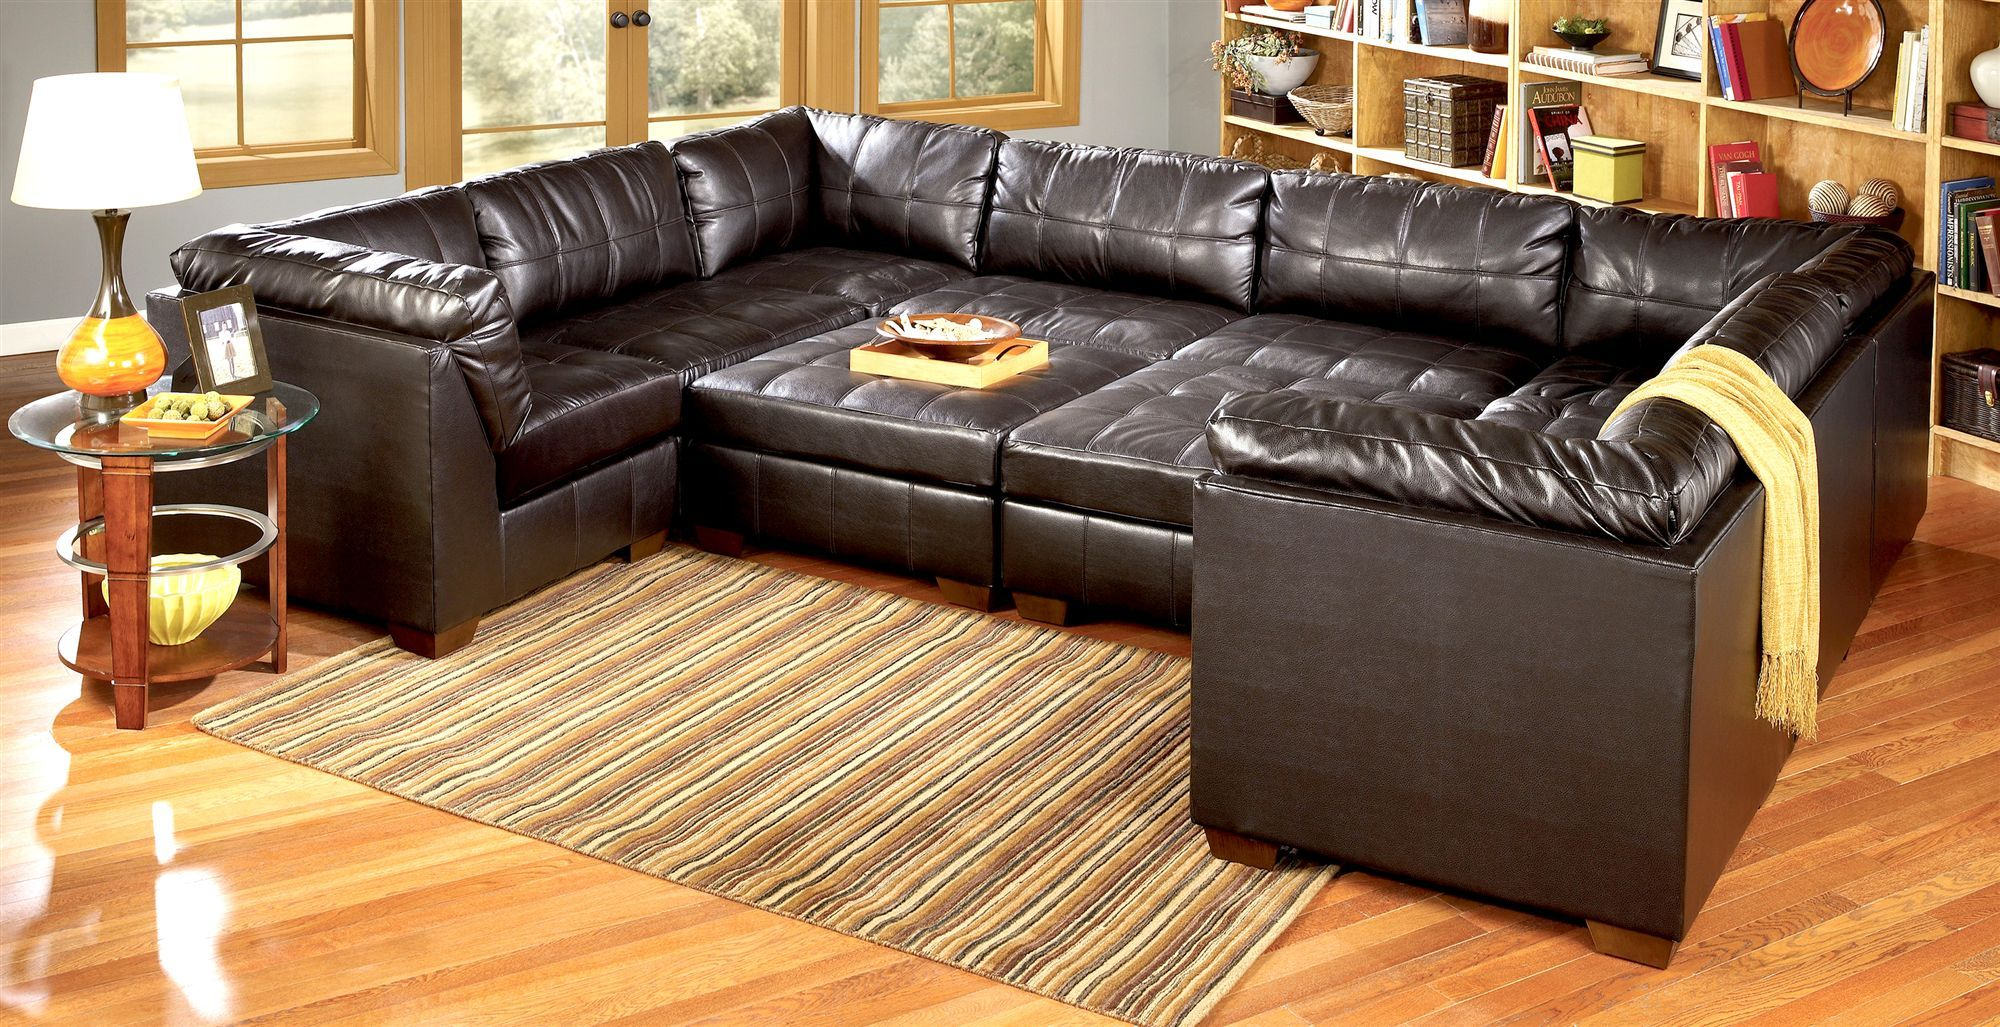 Modular Pit Group Sofa Sick Home Improvements Pinterest